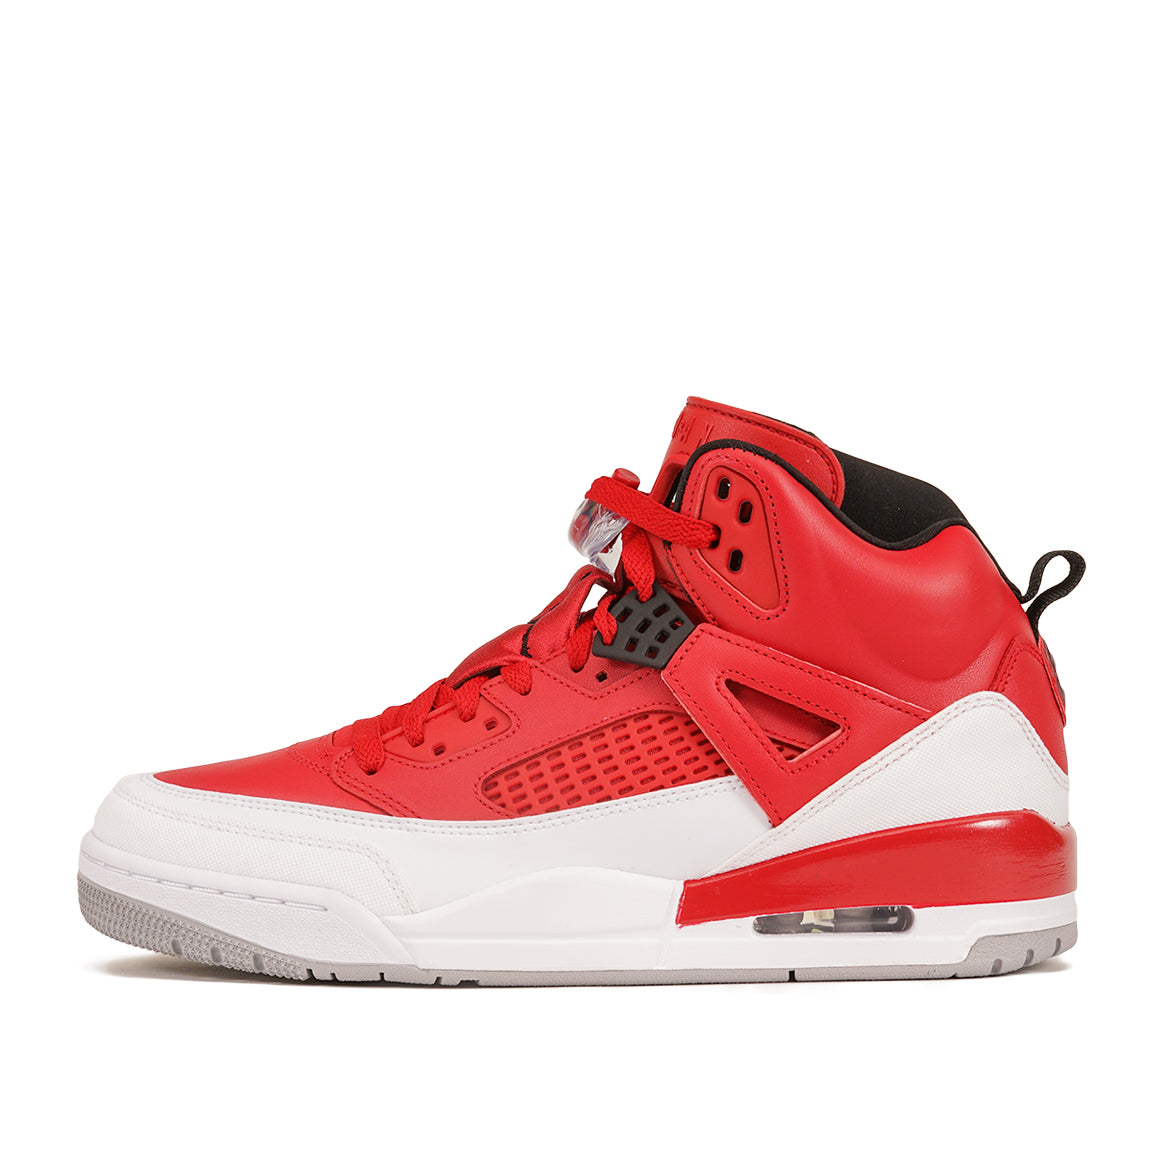 a1486742972c JORDAN SPIZIKE - GYM RED